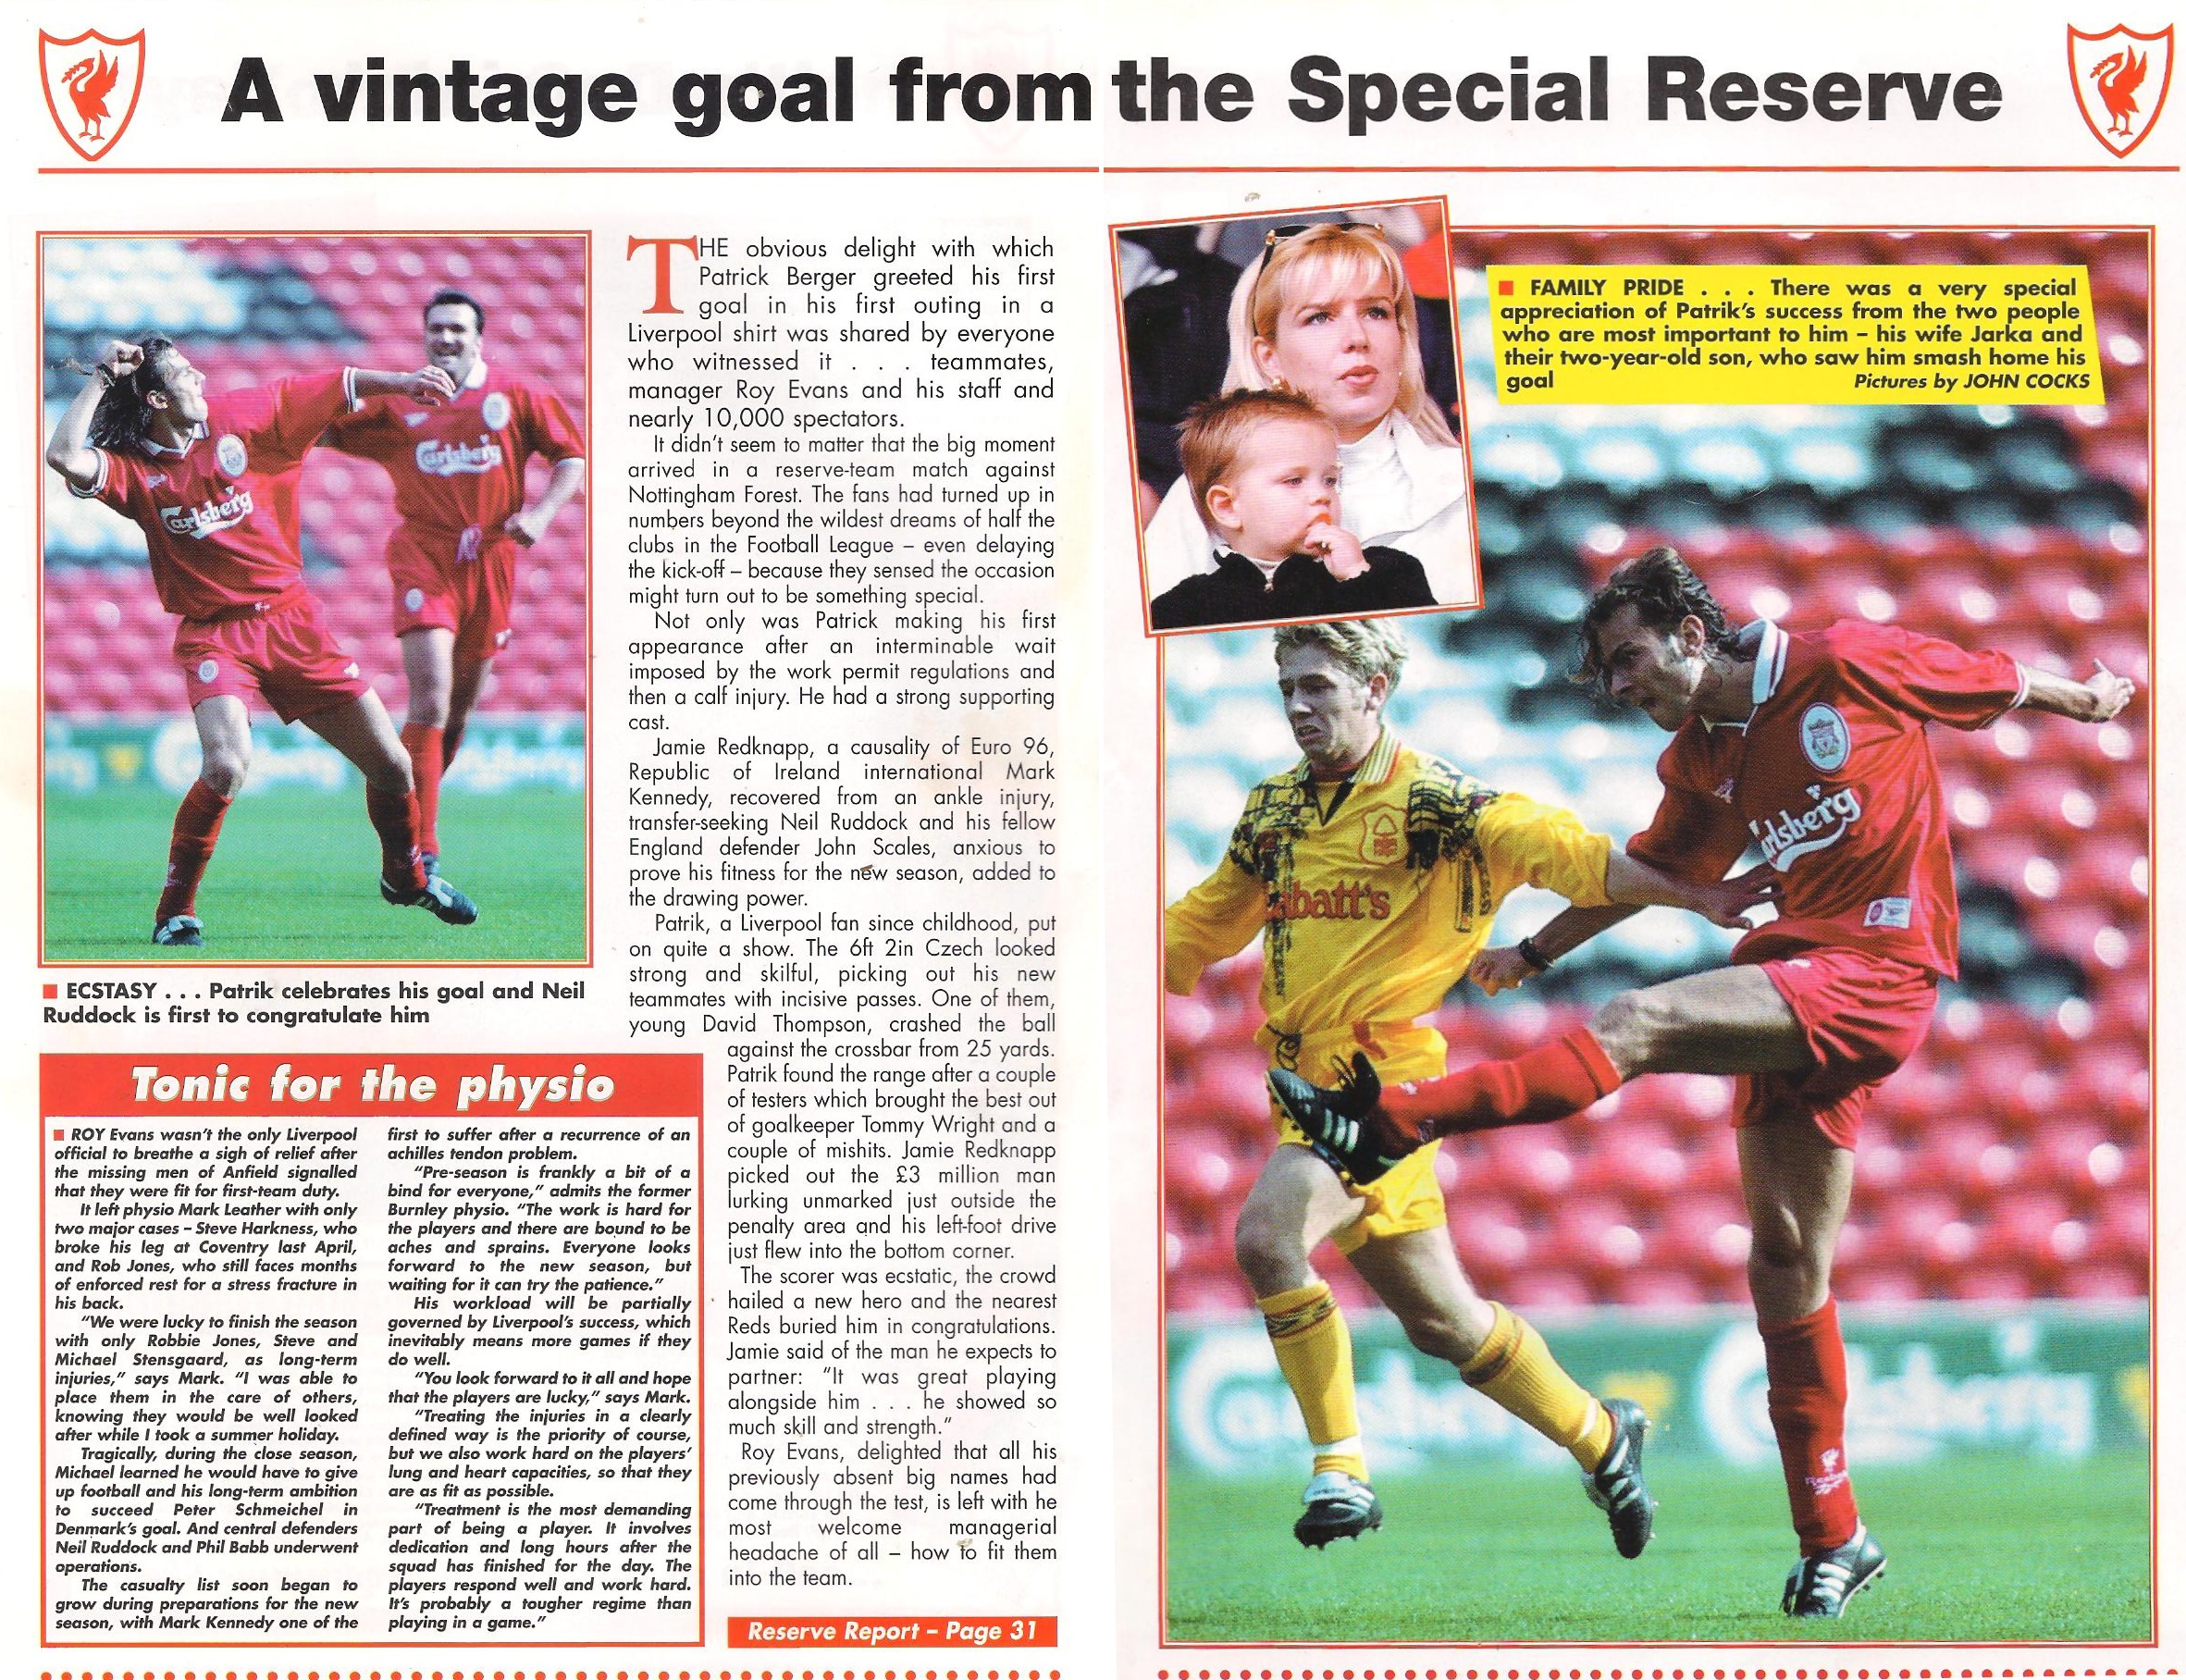 A vintage goal from the special reserve - 1996